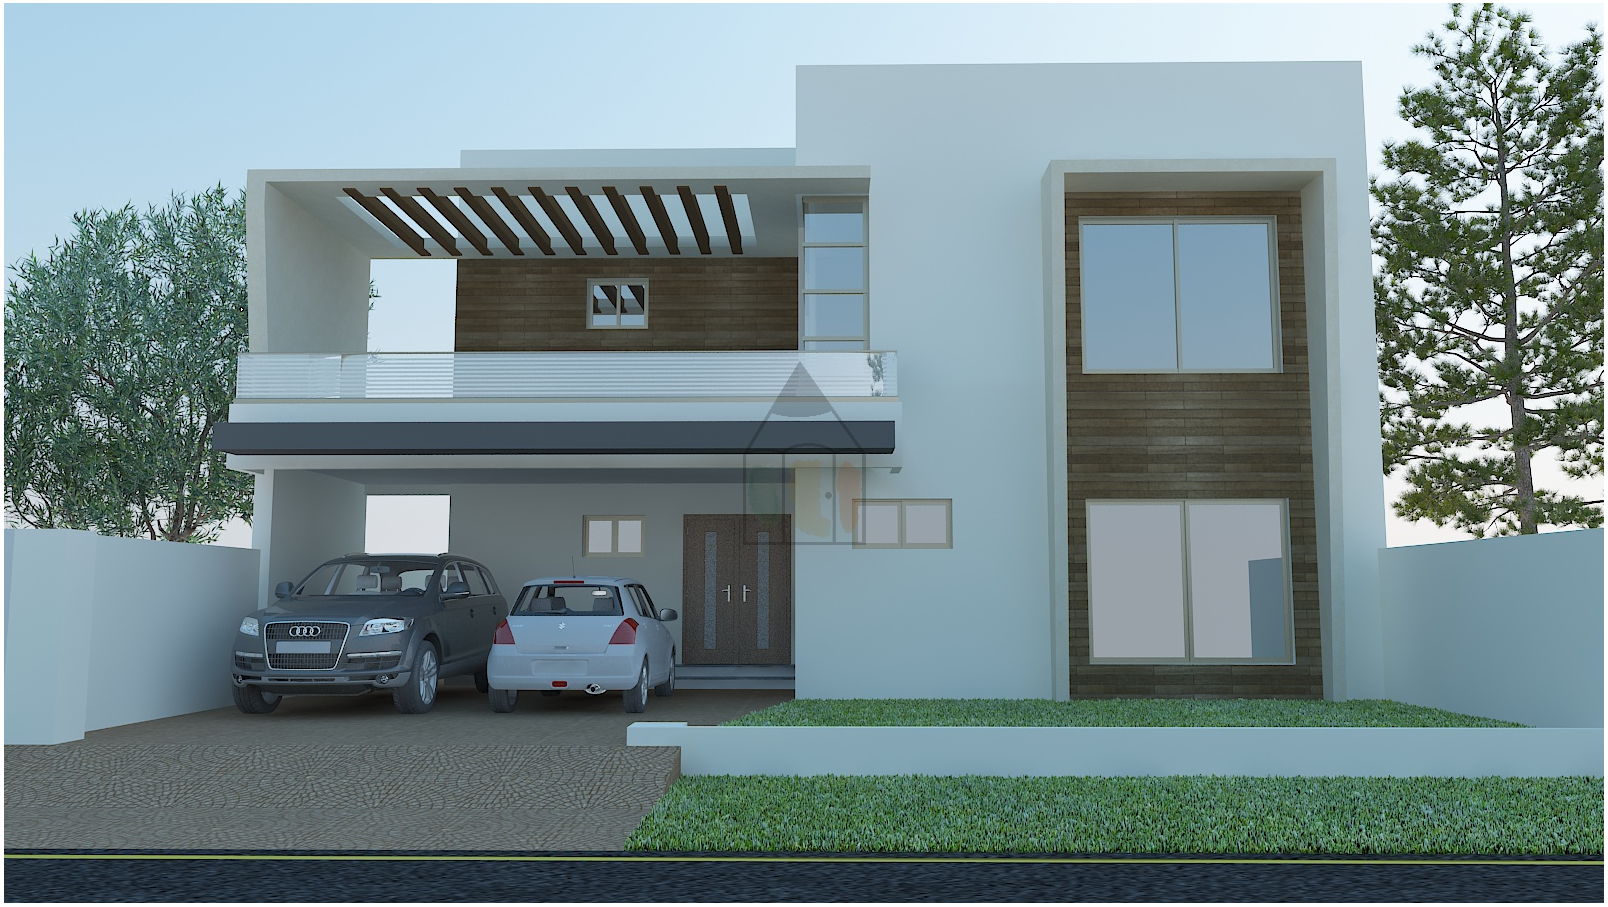 45 X 100 House Design 4500 Square Feet House Front Design House Design Bungalow House Design